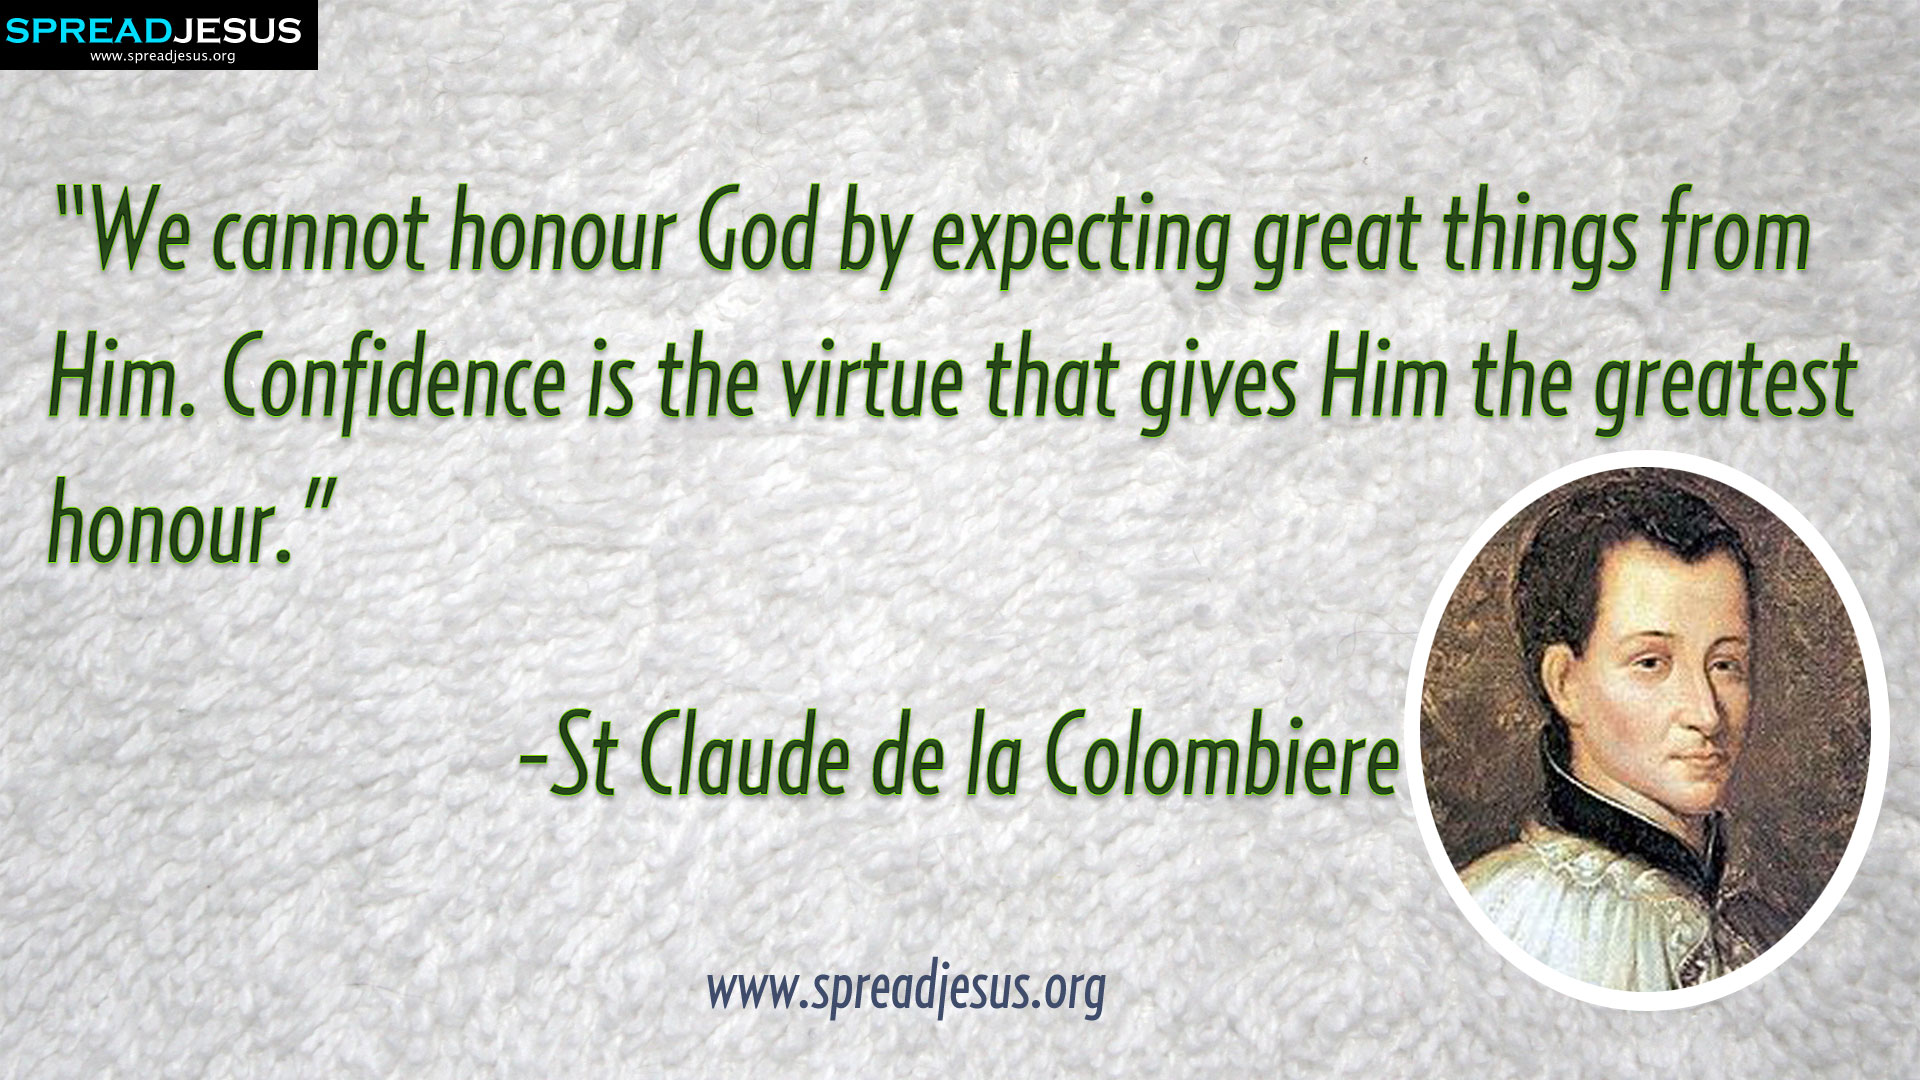 st claude de la colombiere quotes hd wallpaper download